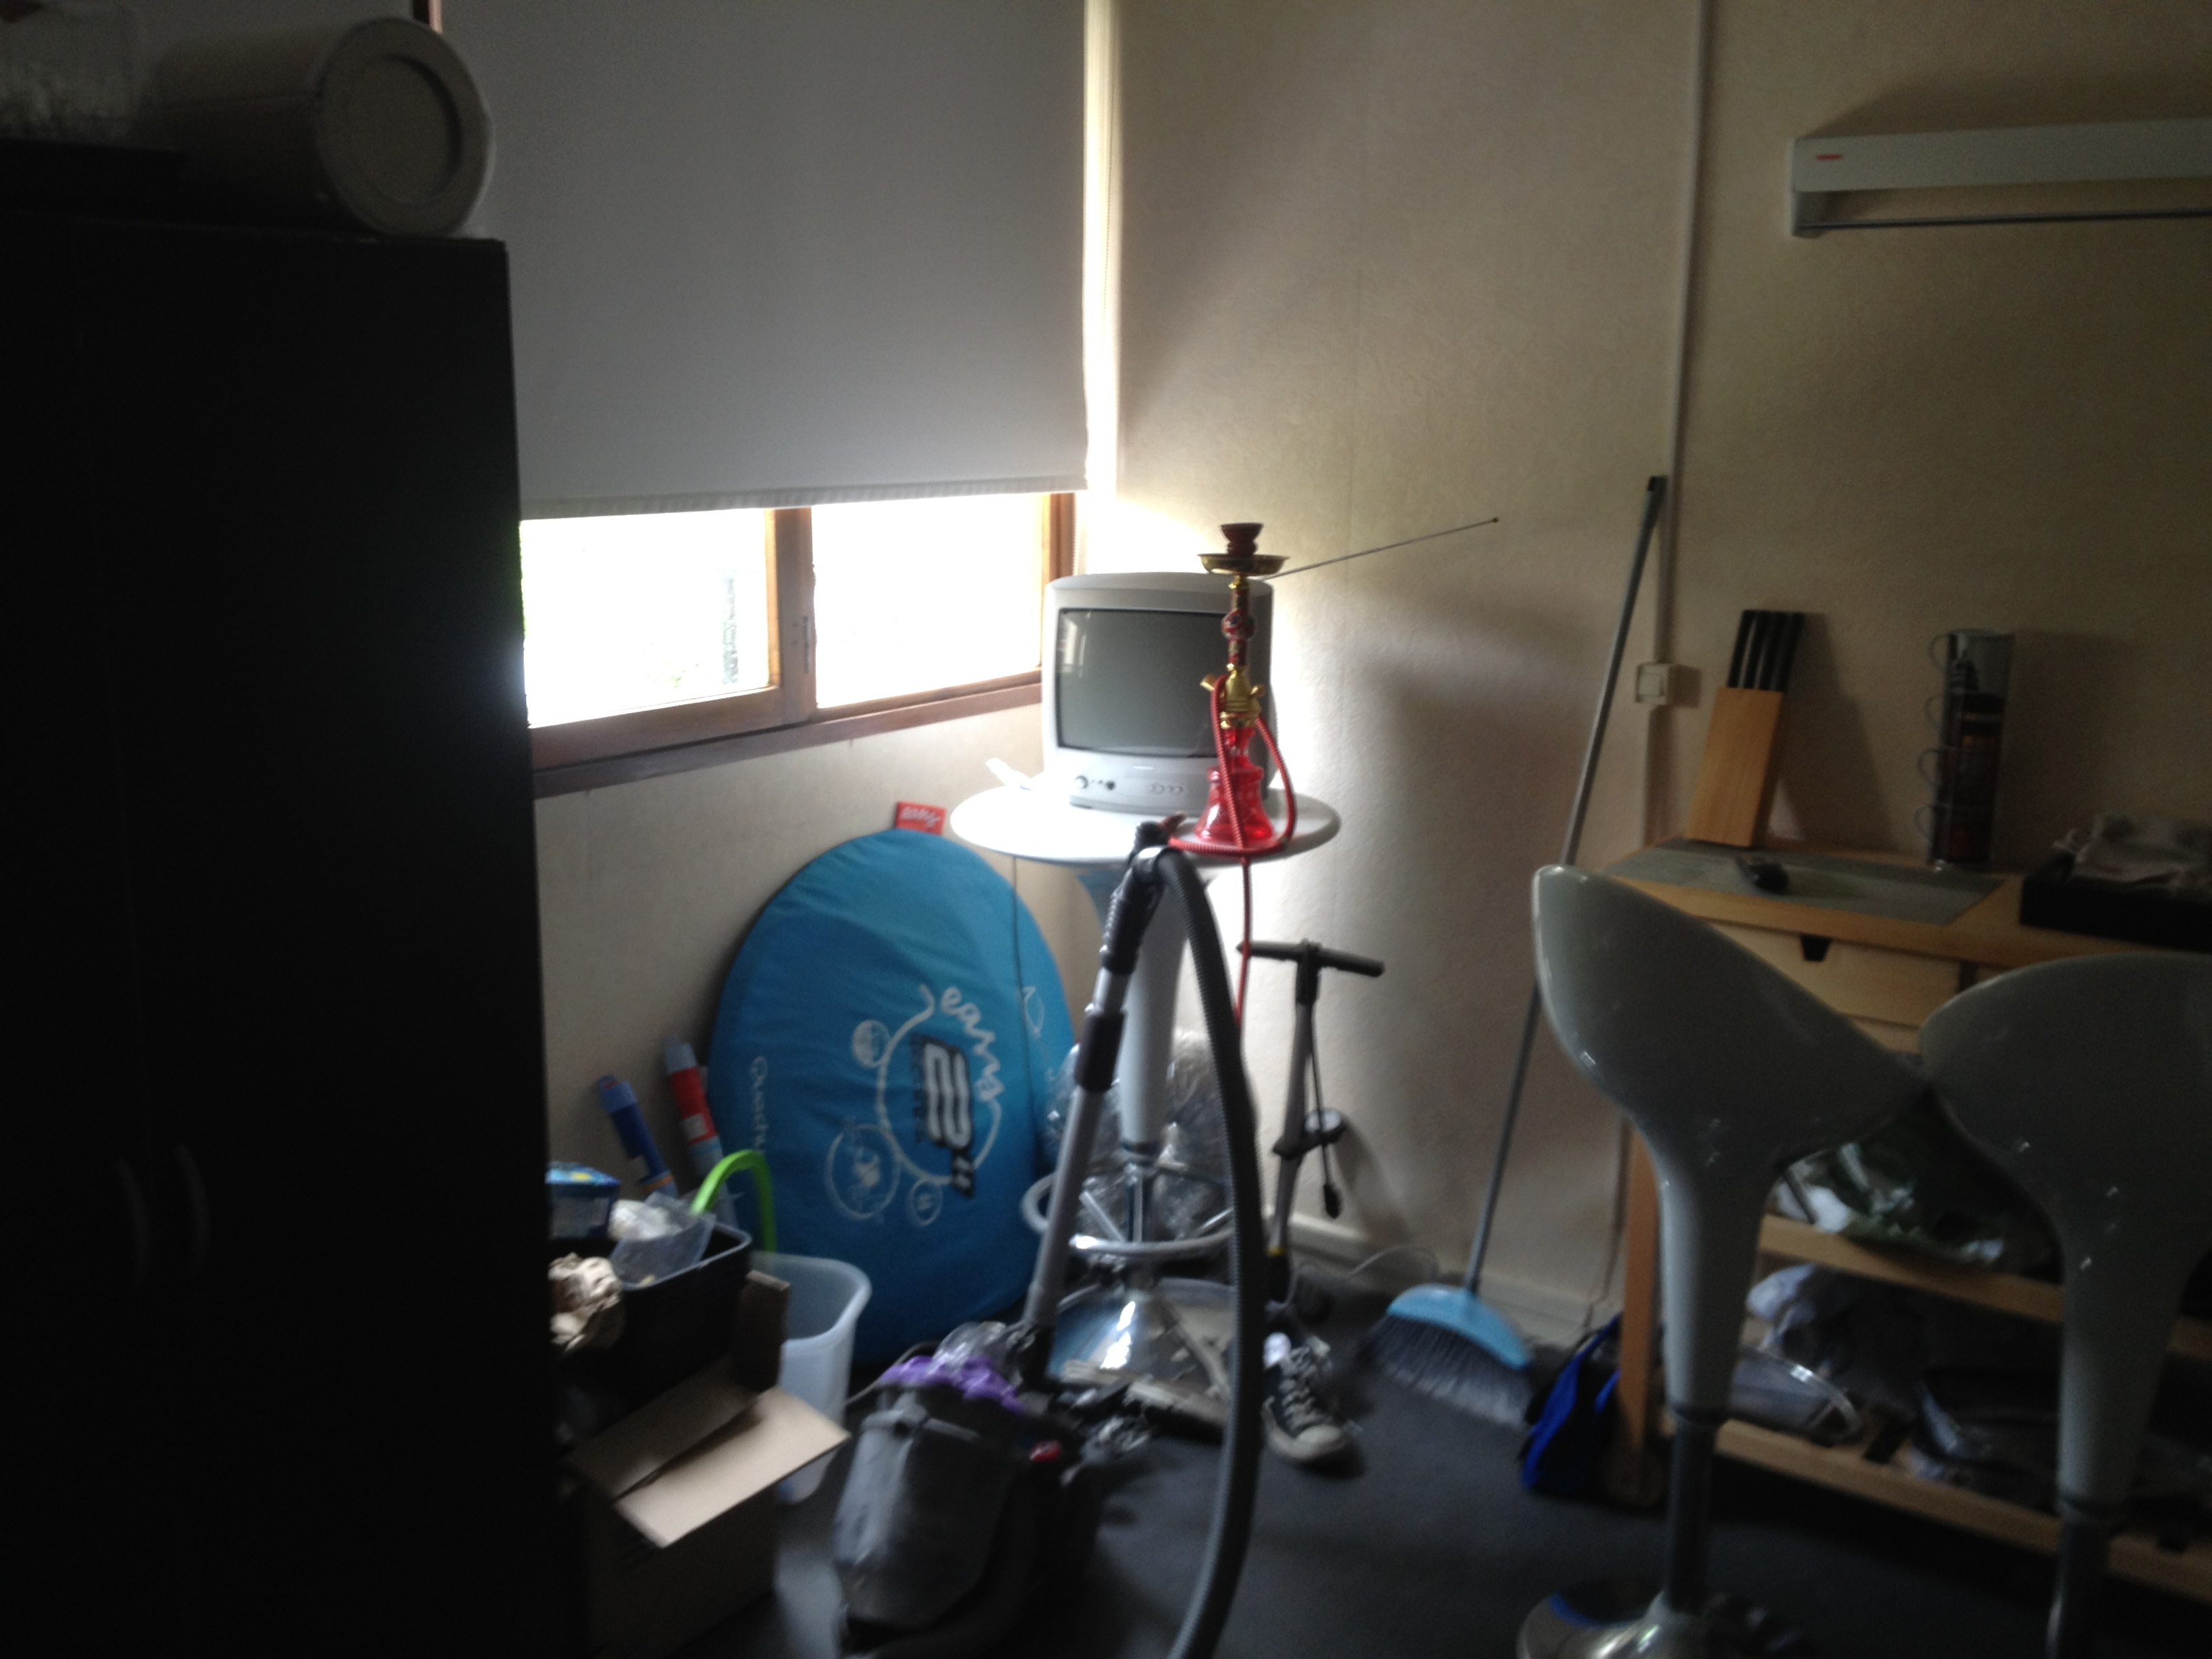 Photo] Ma chambre en bordel total! sur le forum Blabla 18-25 ...